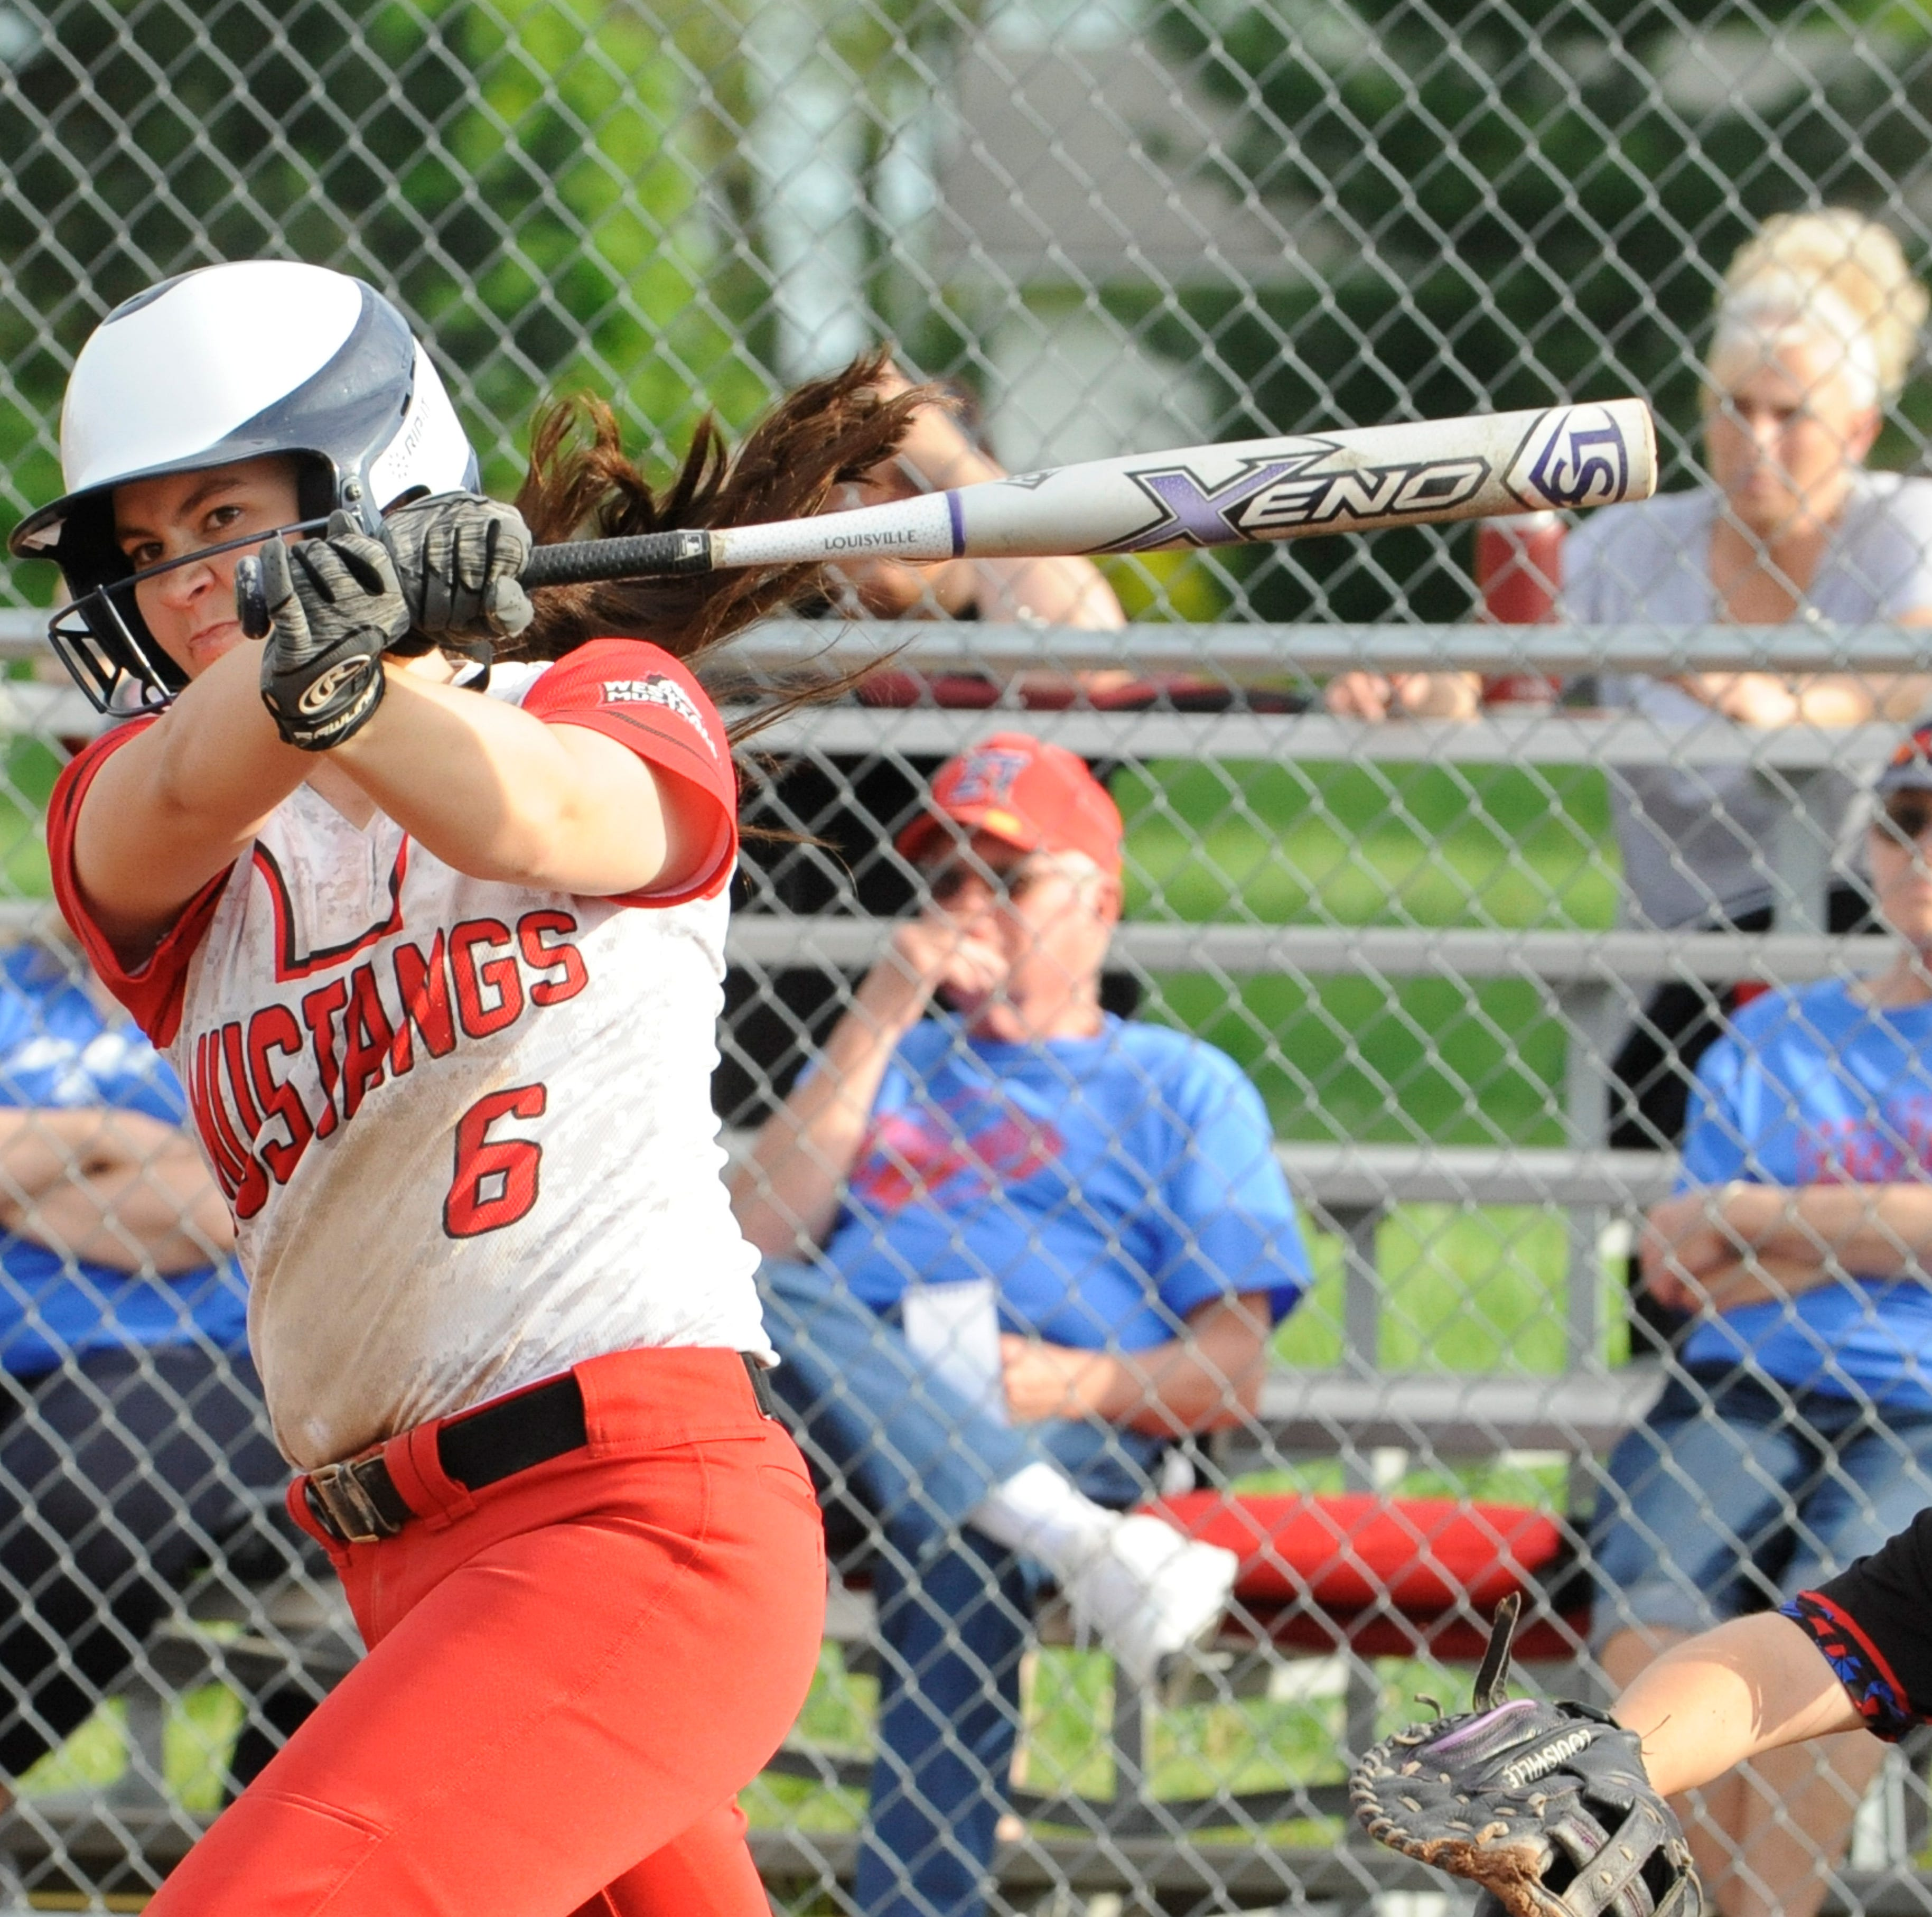 Golden again: Westfall softball wins second straight SVC Gold Ball after 4-0 win over ZT